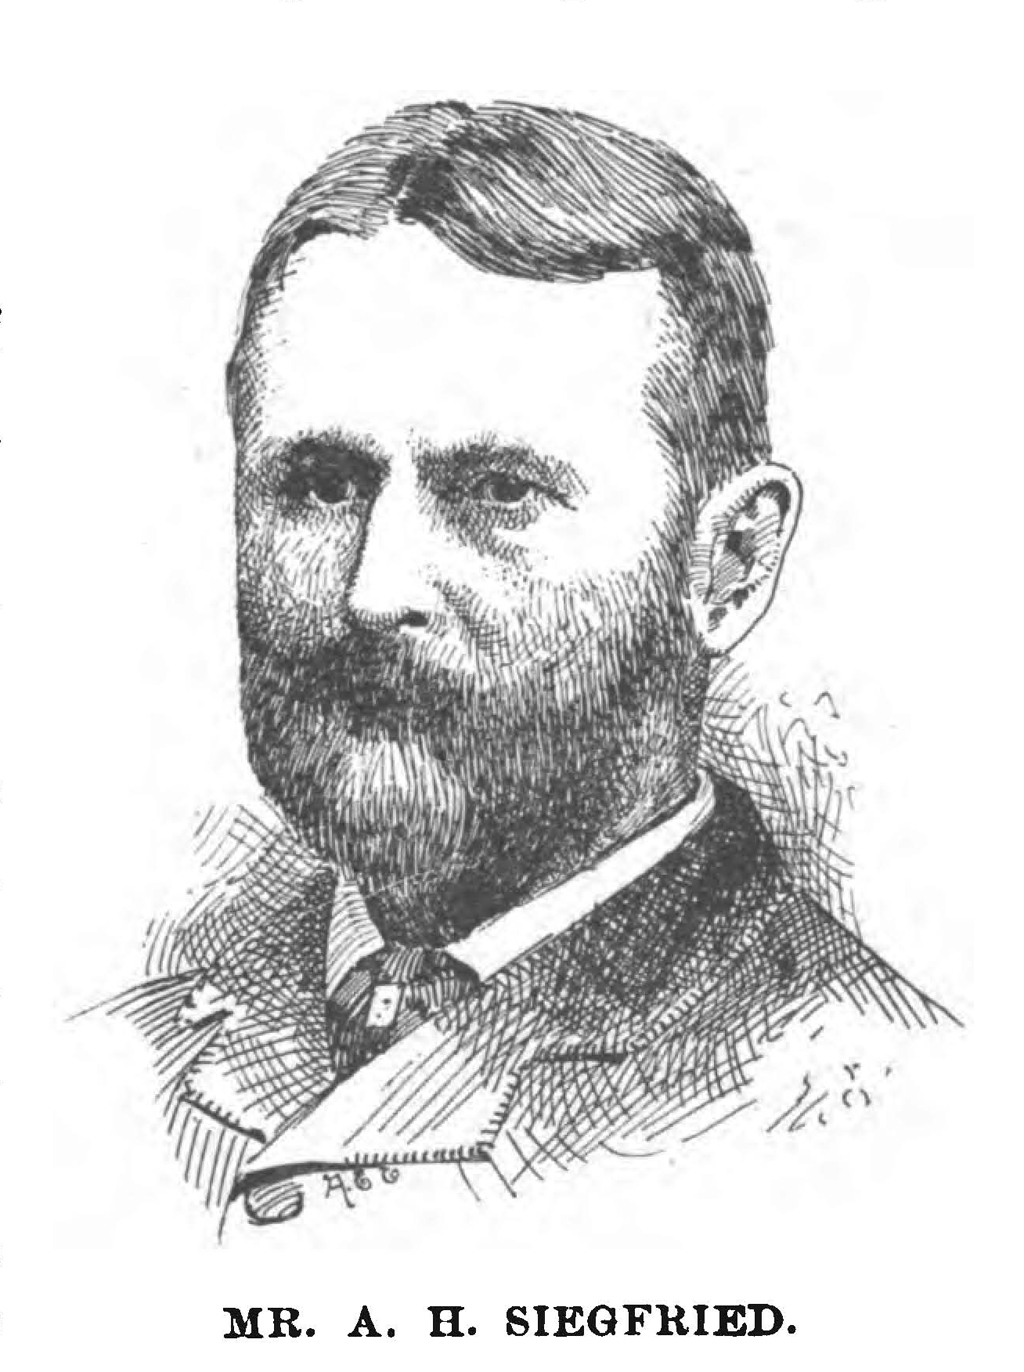 Portrait of Addison H. Siegfried by A.E.E. (1893). From The Mississippi River and Its Source by J.V. Brower (Minneapolis: Harrison & Smith, State Printers, 1893).